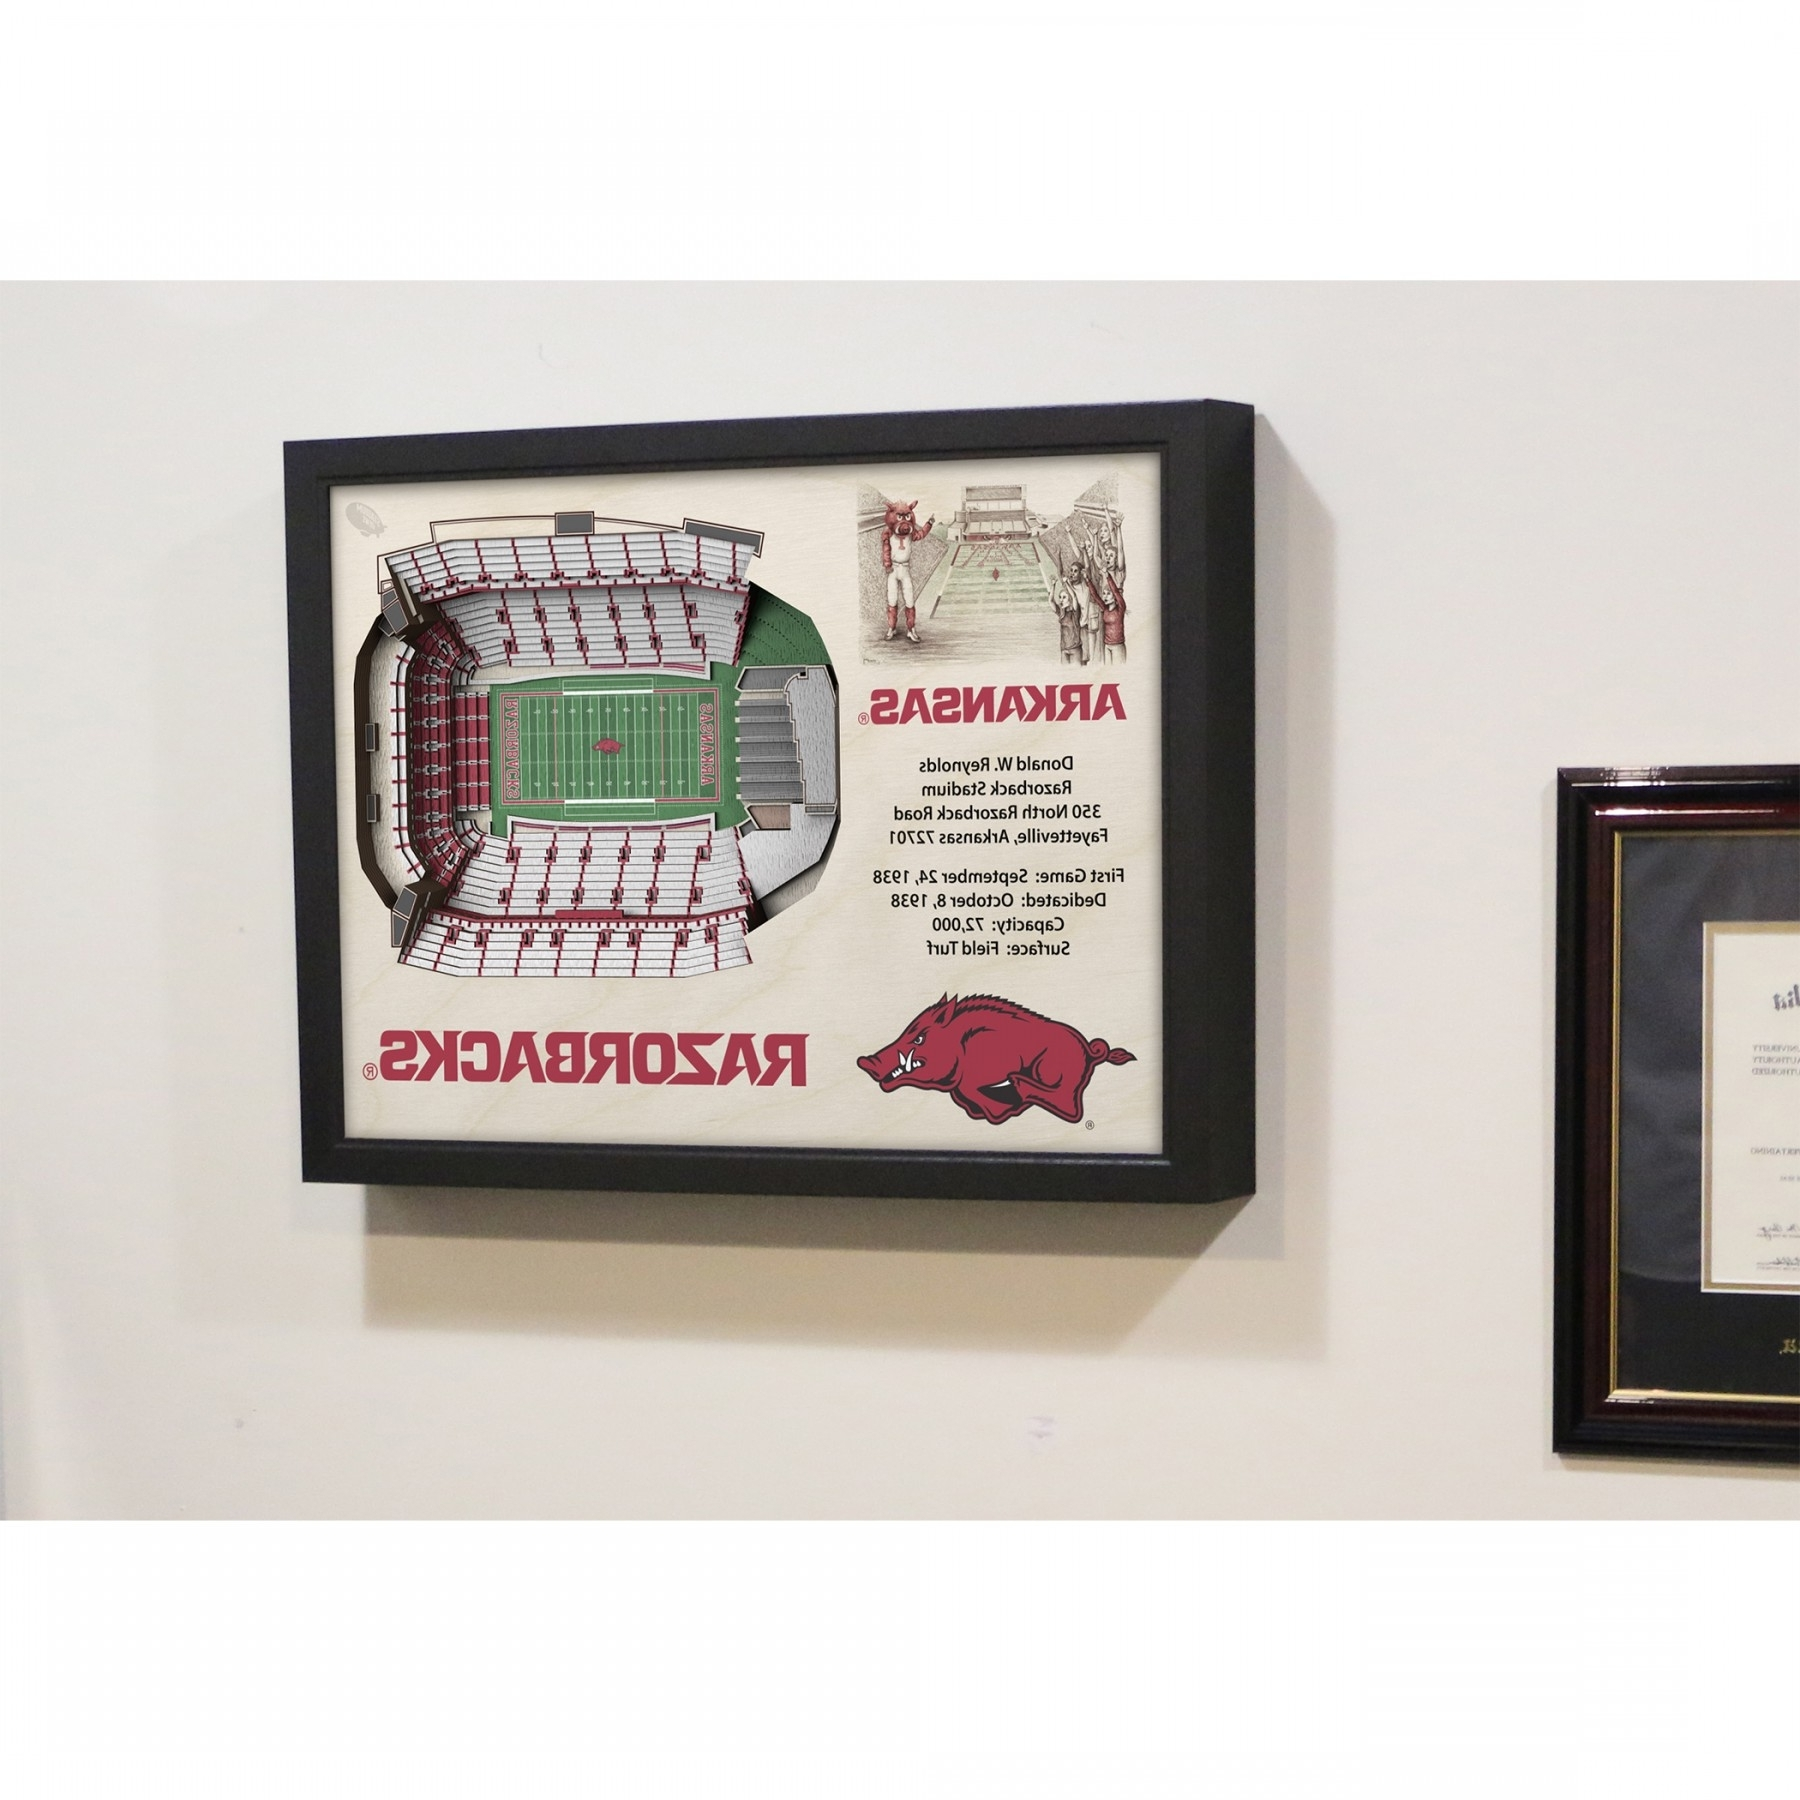 Most Current Razorback Wall Art Intended For Arkansas Razorbacks Stadiumview Wall Art – Donald W (View 6 of 15)